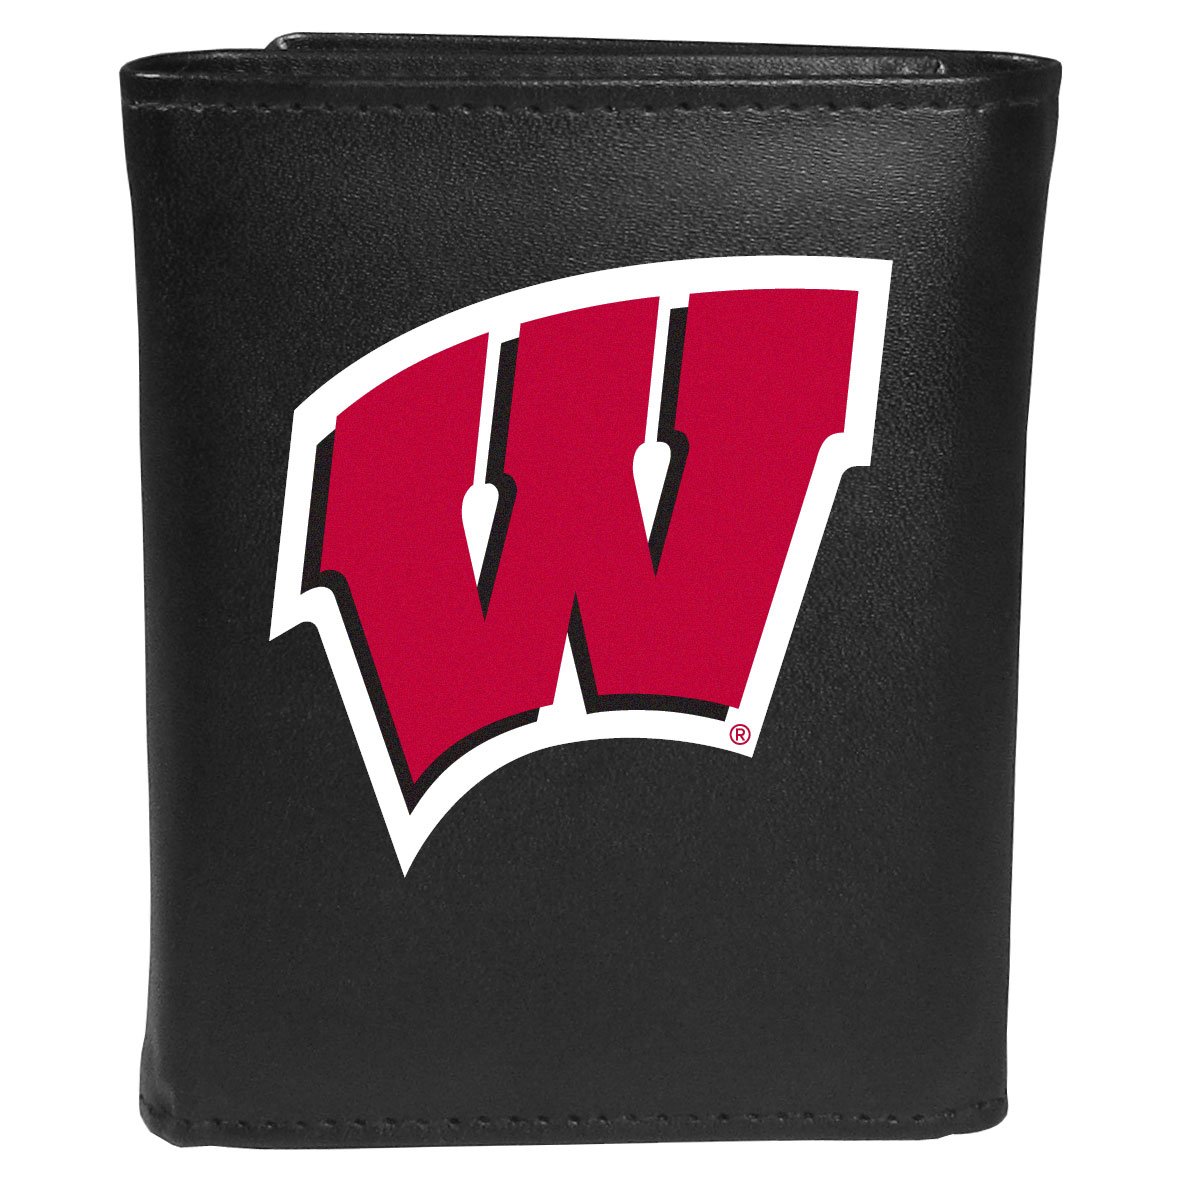 Wisconsin Badgers Leather Tri-fold Wallet, Large Logo - Our classic fine leather tri-fold wallet is meticulously crafted with genuine leather that will age beautifully so you will have a quality wallet for years to come. This is fan apparel at its finest. The wallet is packed with organizational  features; lots of credit card slots, large billfold pocket, and a window ID slot. The front of the wallet features an extra large Wisconsin Badgers printed logo.